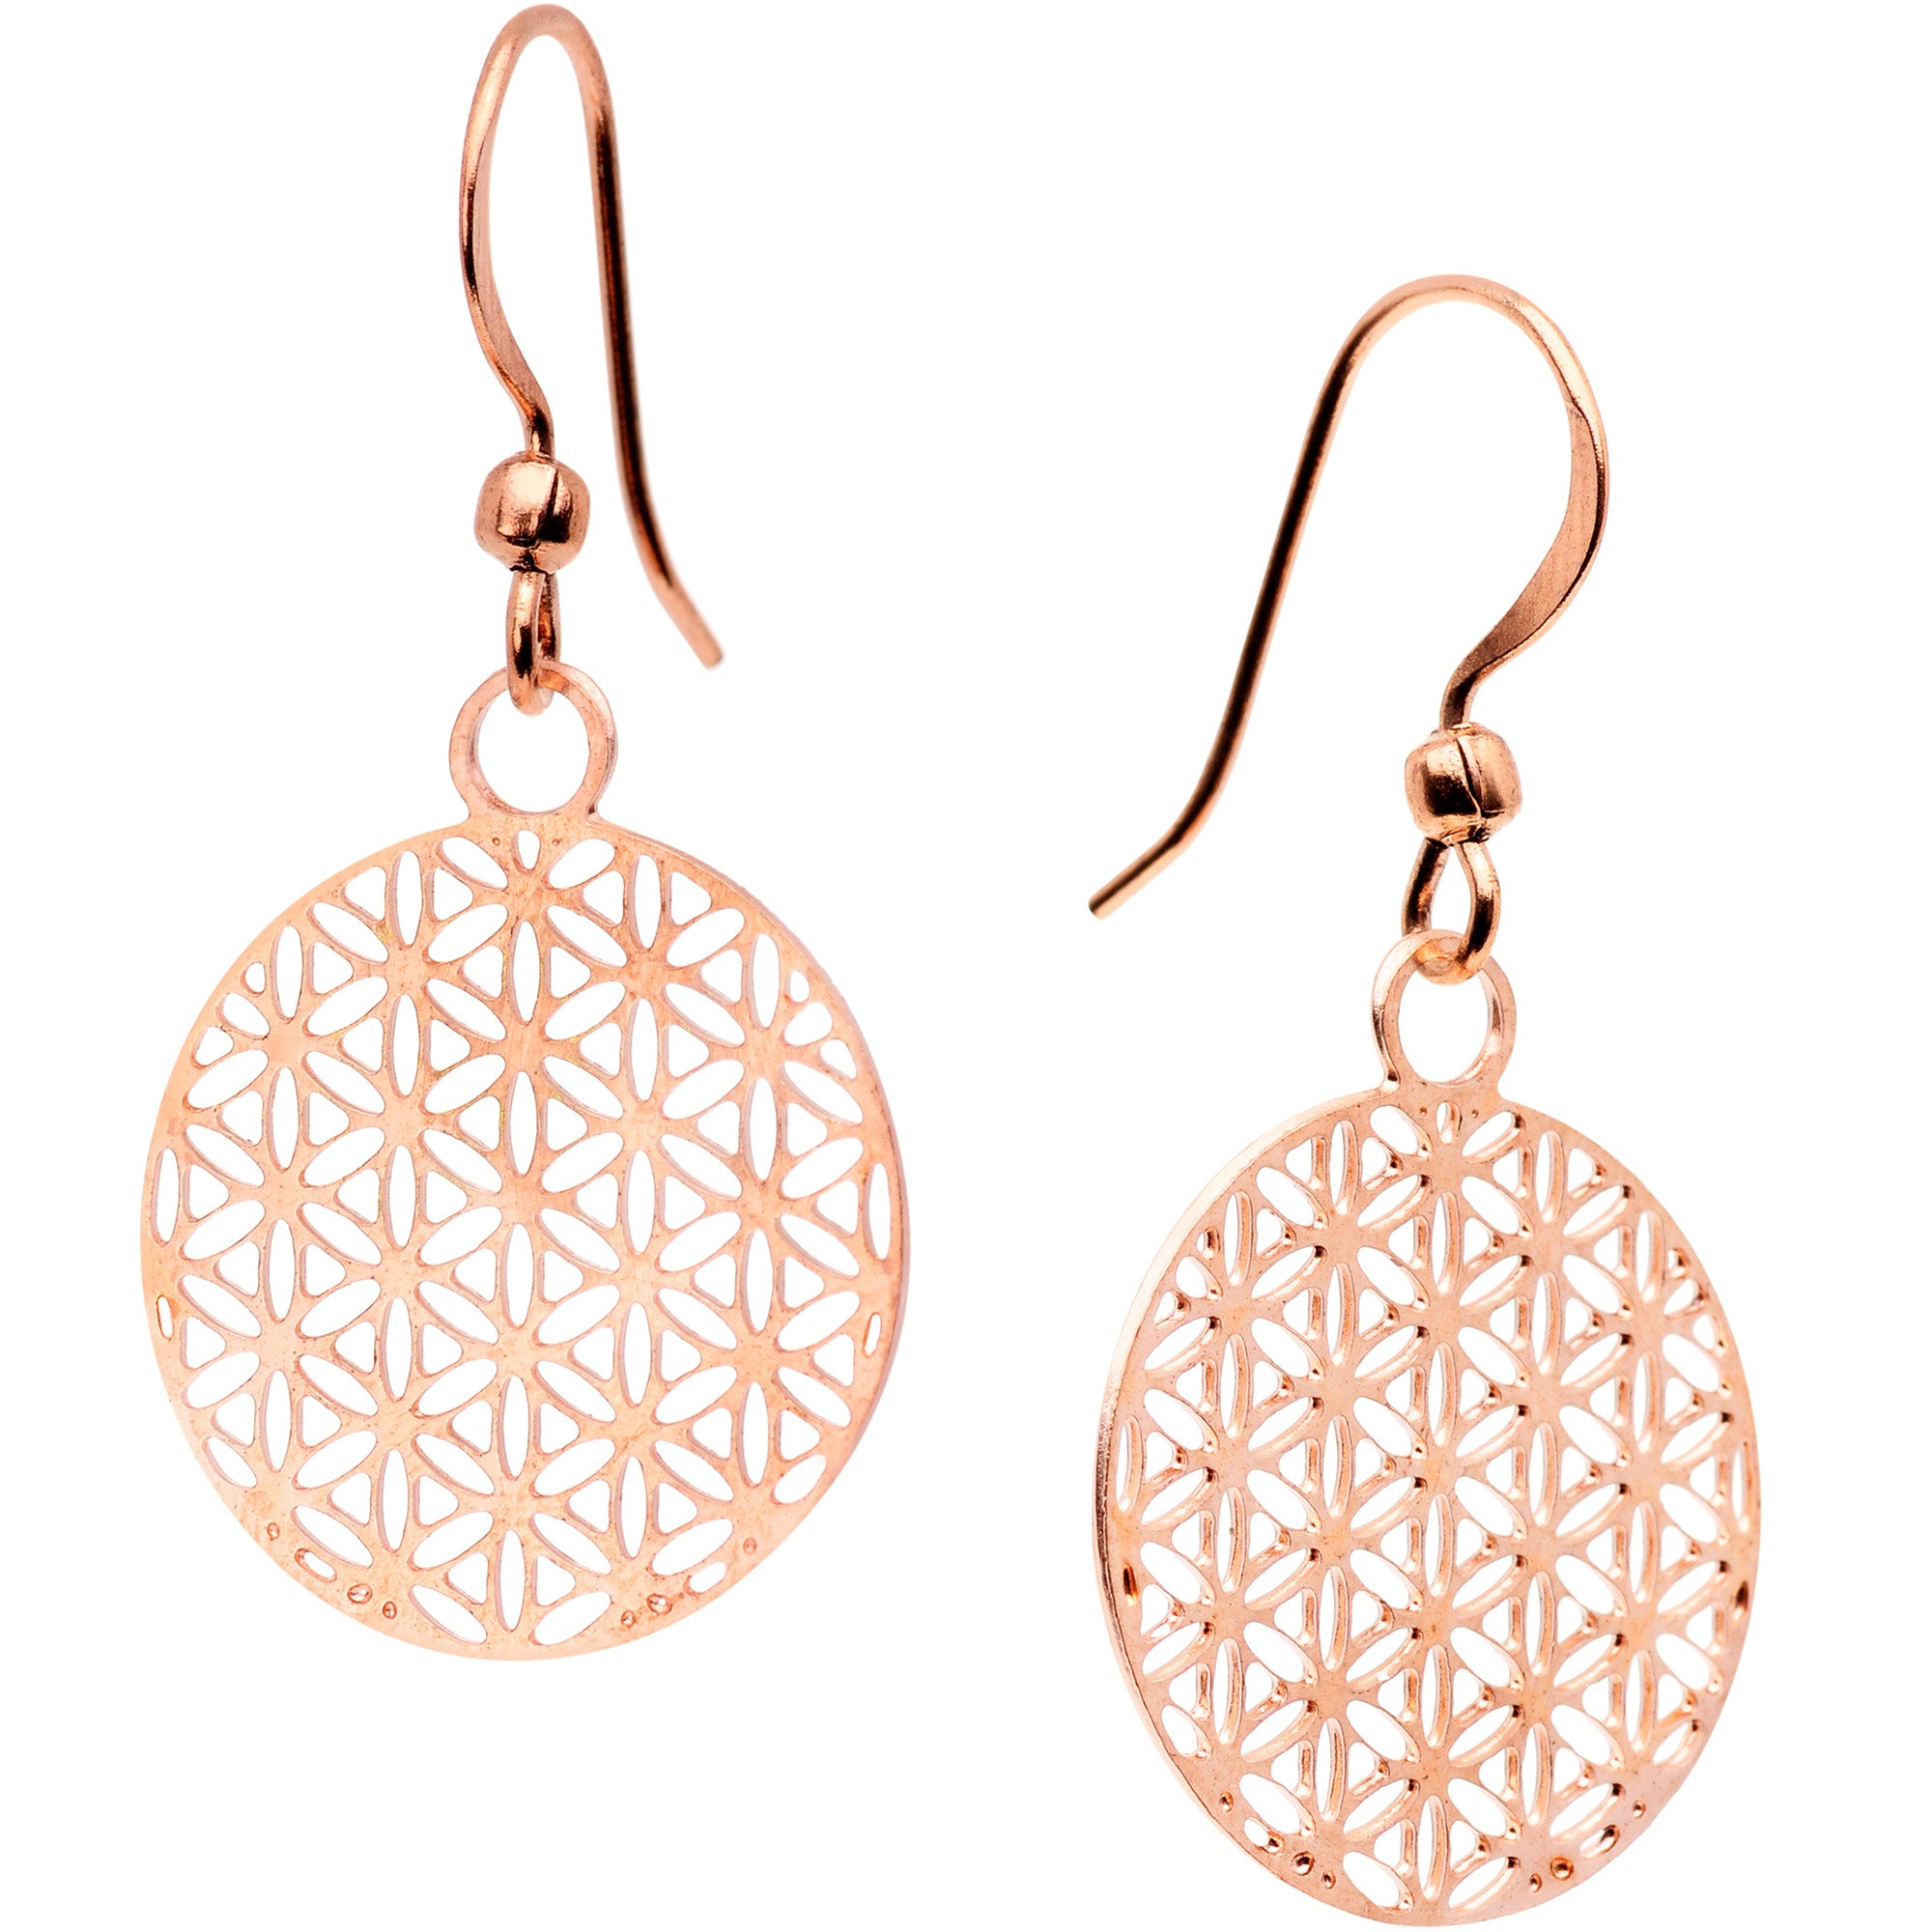 Handcrafted Copper Geometric Refraction Fishhook Earrings